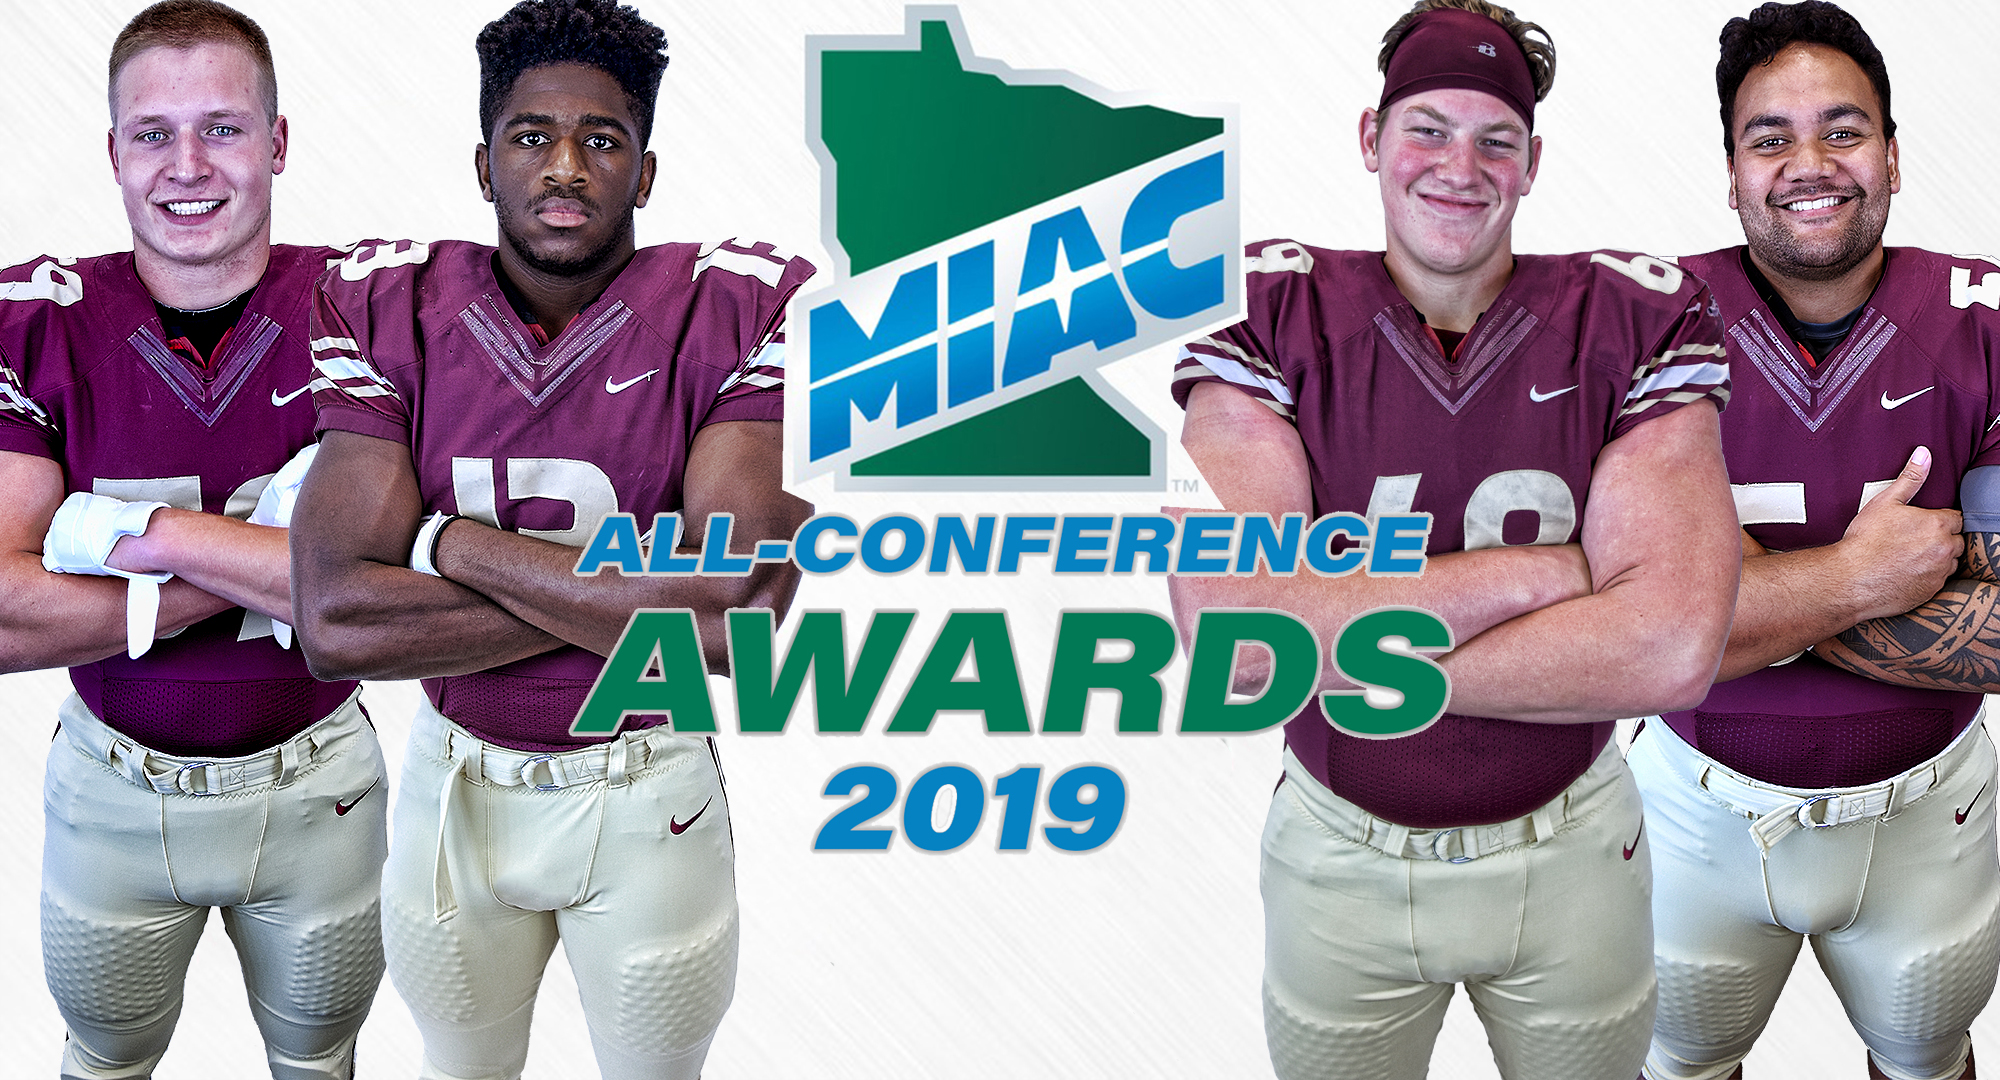 Alex Berg, Willie Julkes, Hans Solberg and Mykal Tuiolosega-Siufanua were all named to the MIAC All-Conference First Team.